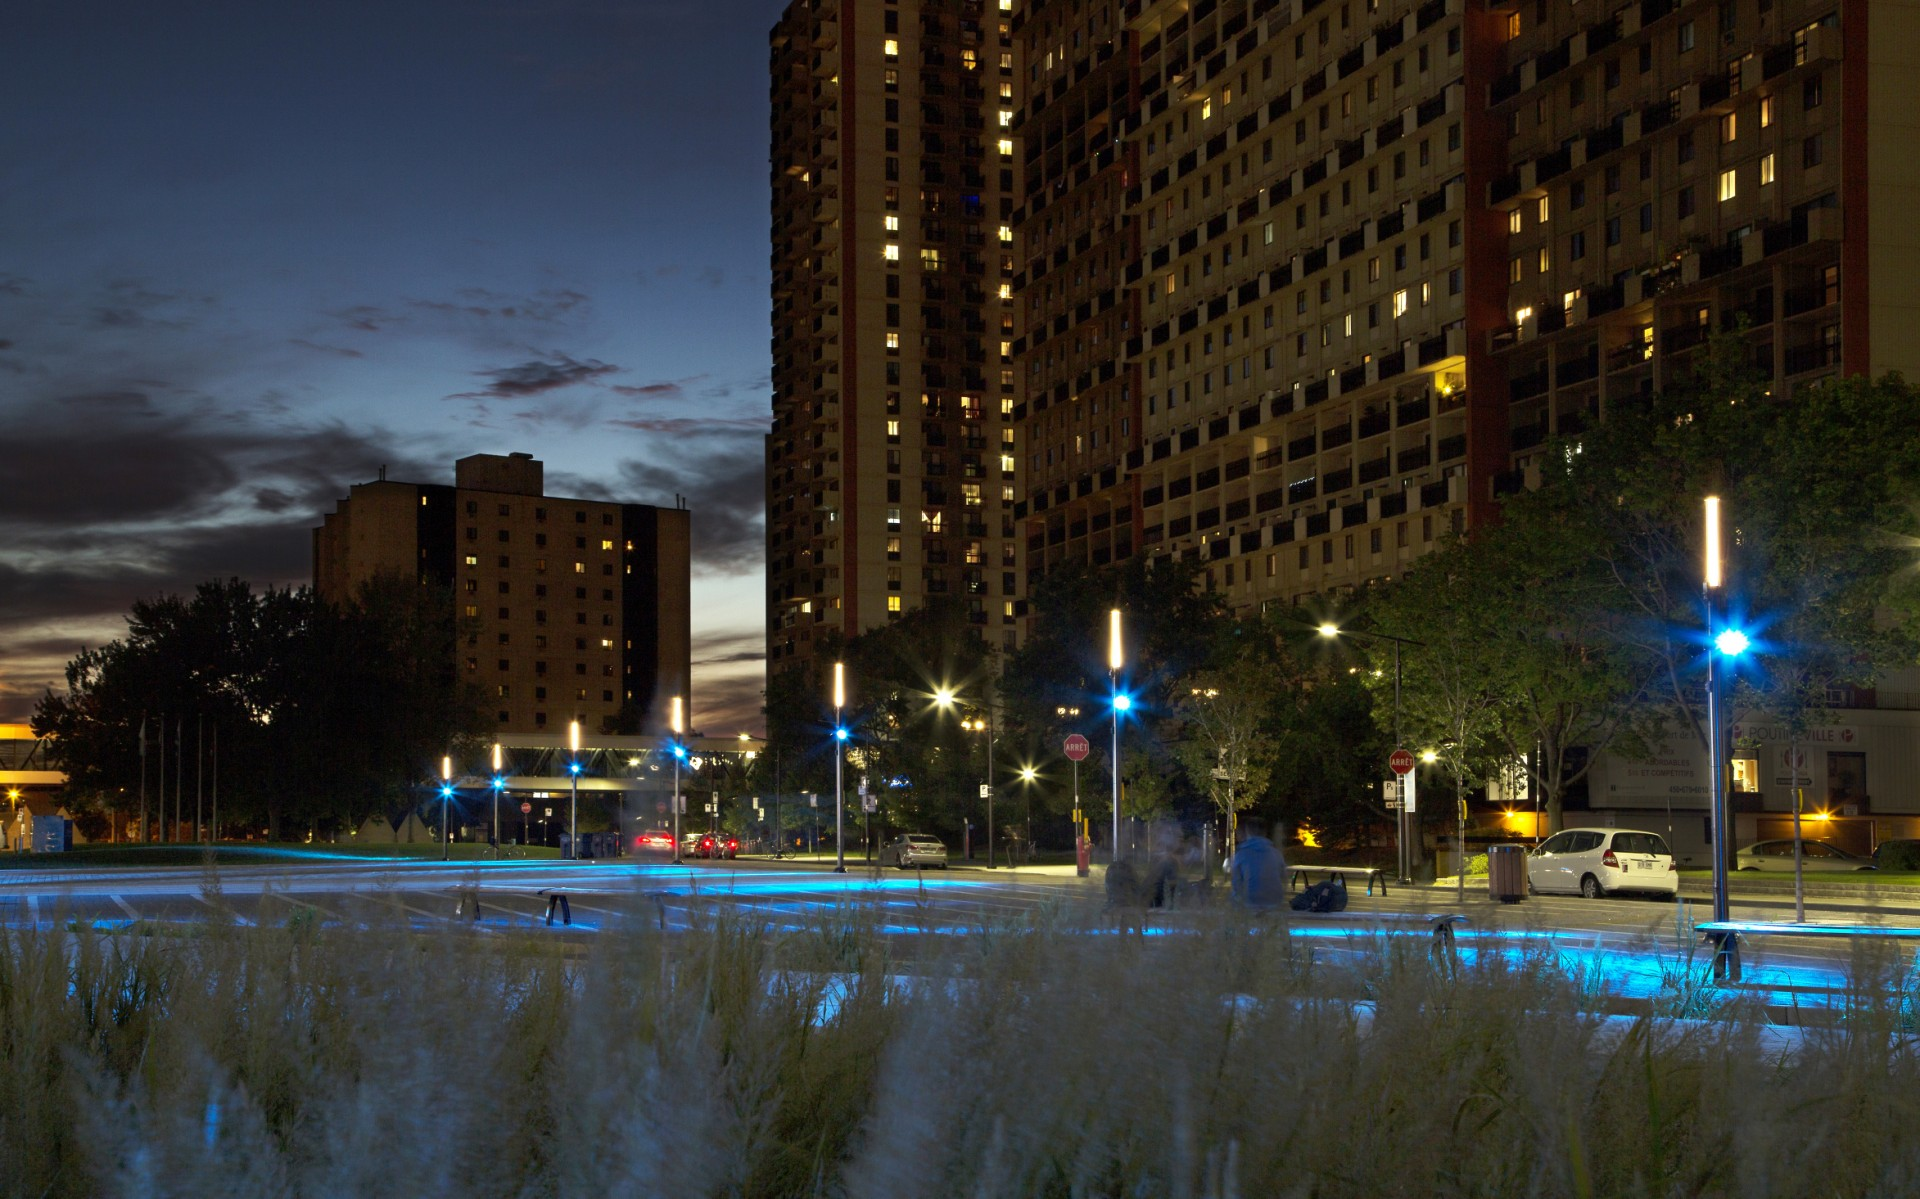 The result is a flexible, dynamic lighting design that brings a modern touch to the urban heart of Longueuil.